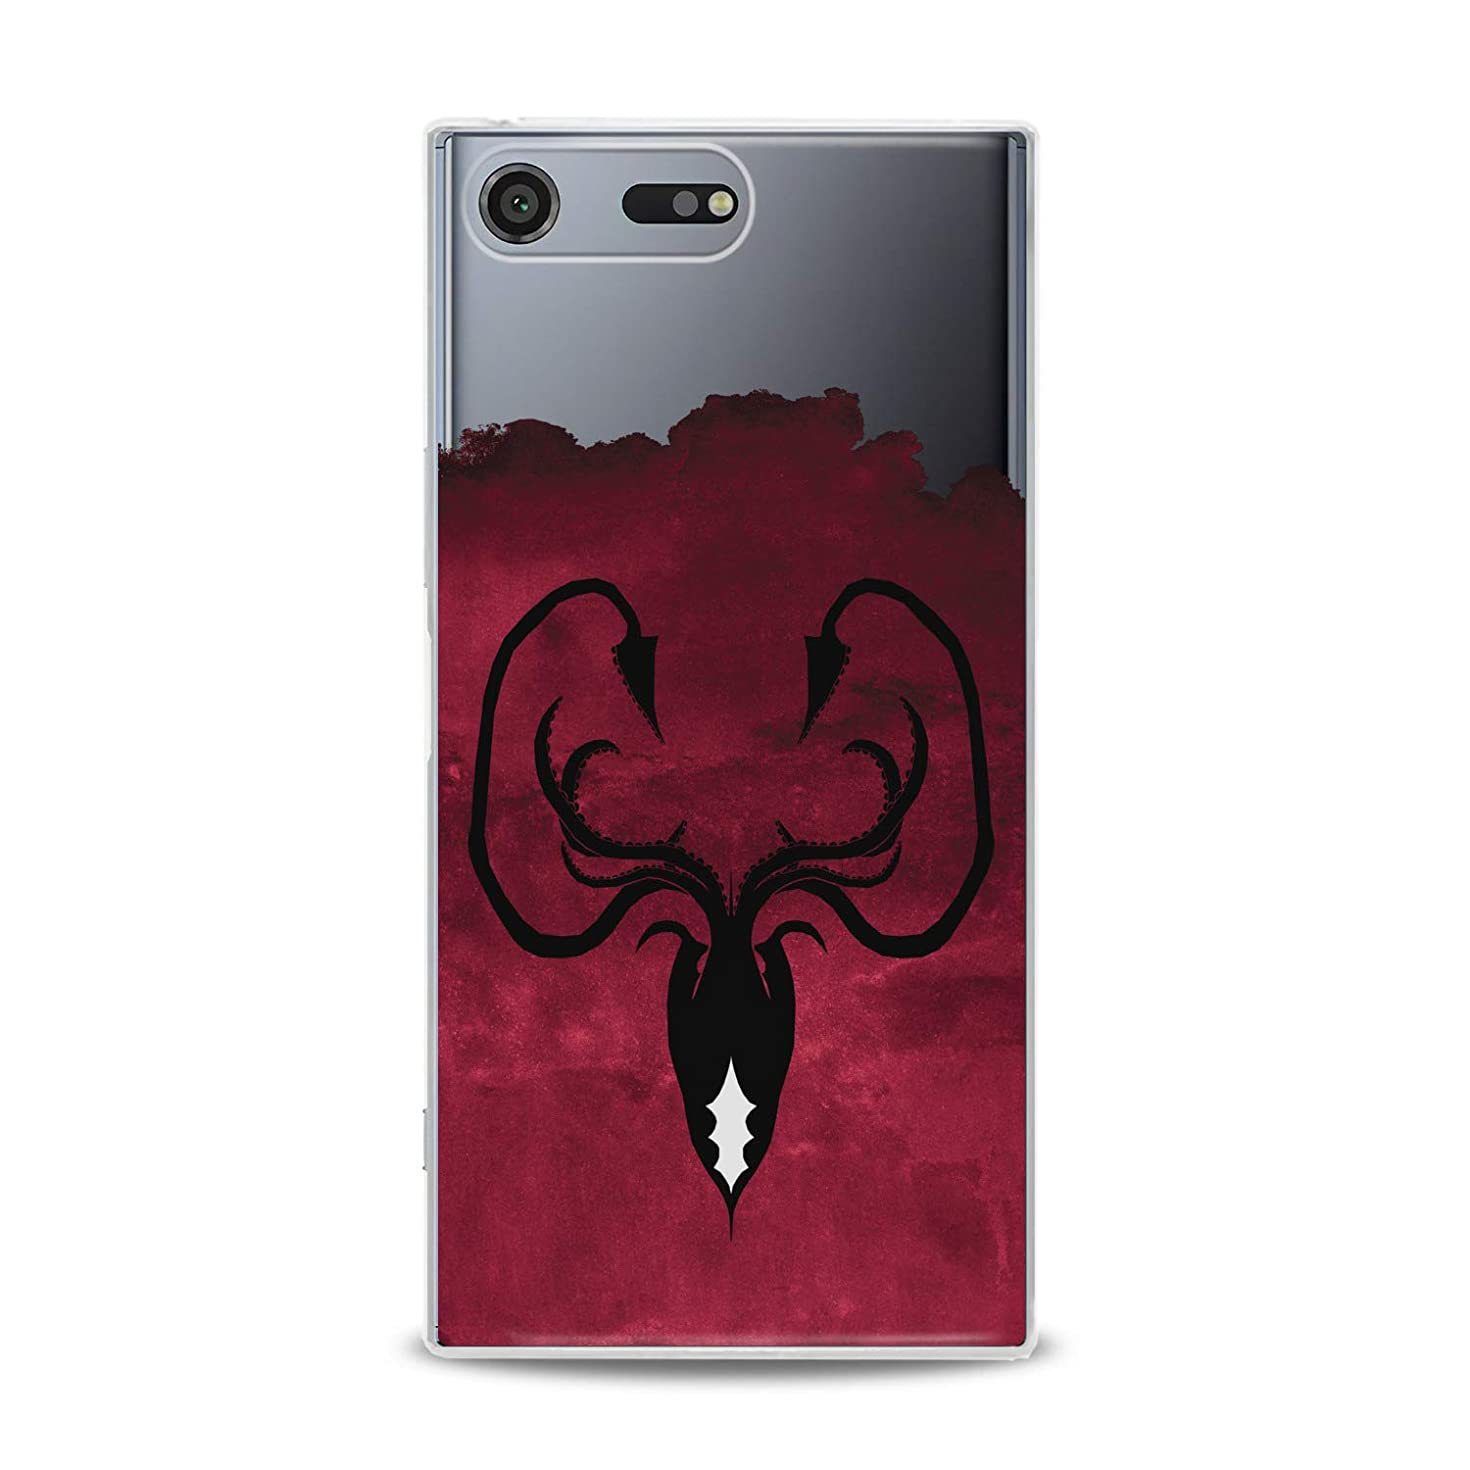 Lex Altern TPU Case for Sony Xperia L3 XZ3 XZ2 Premium XA3 Ultra XA2 Greyjoy Flexible Octopus Symbol Gift Smooth Black Print Slim fit Game of Thrones Cover Soft Clear Red Design Kingdoms Lightweight